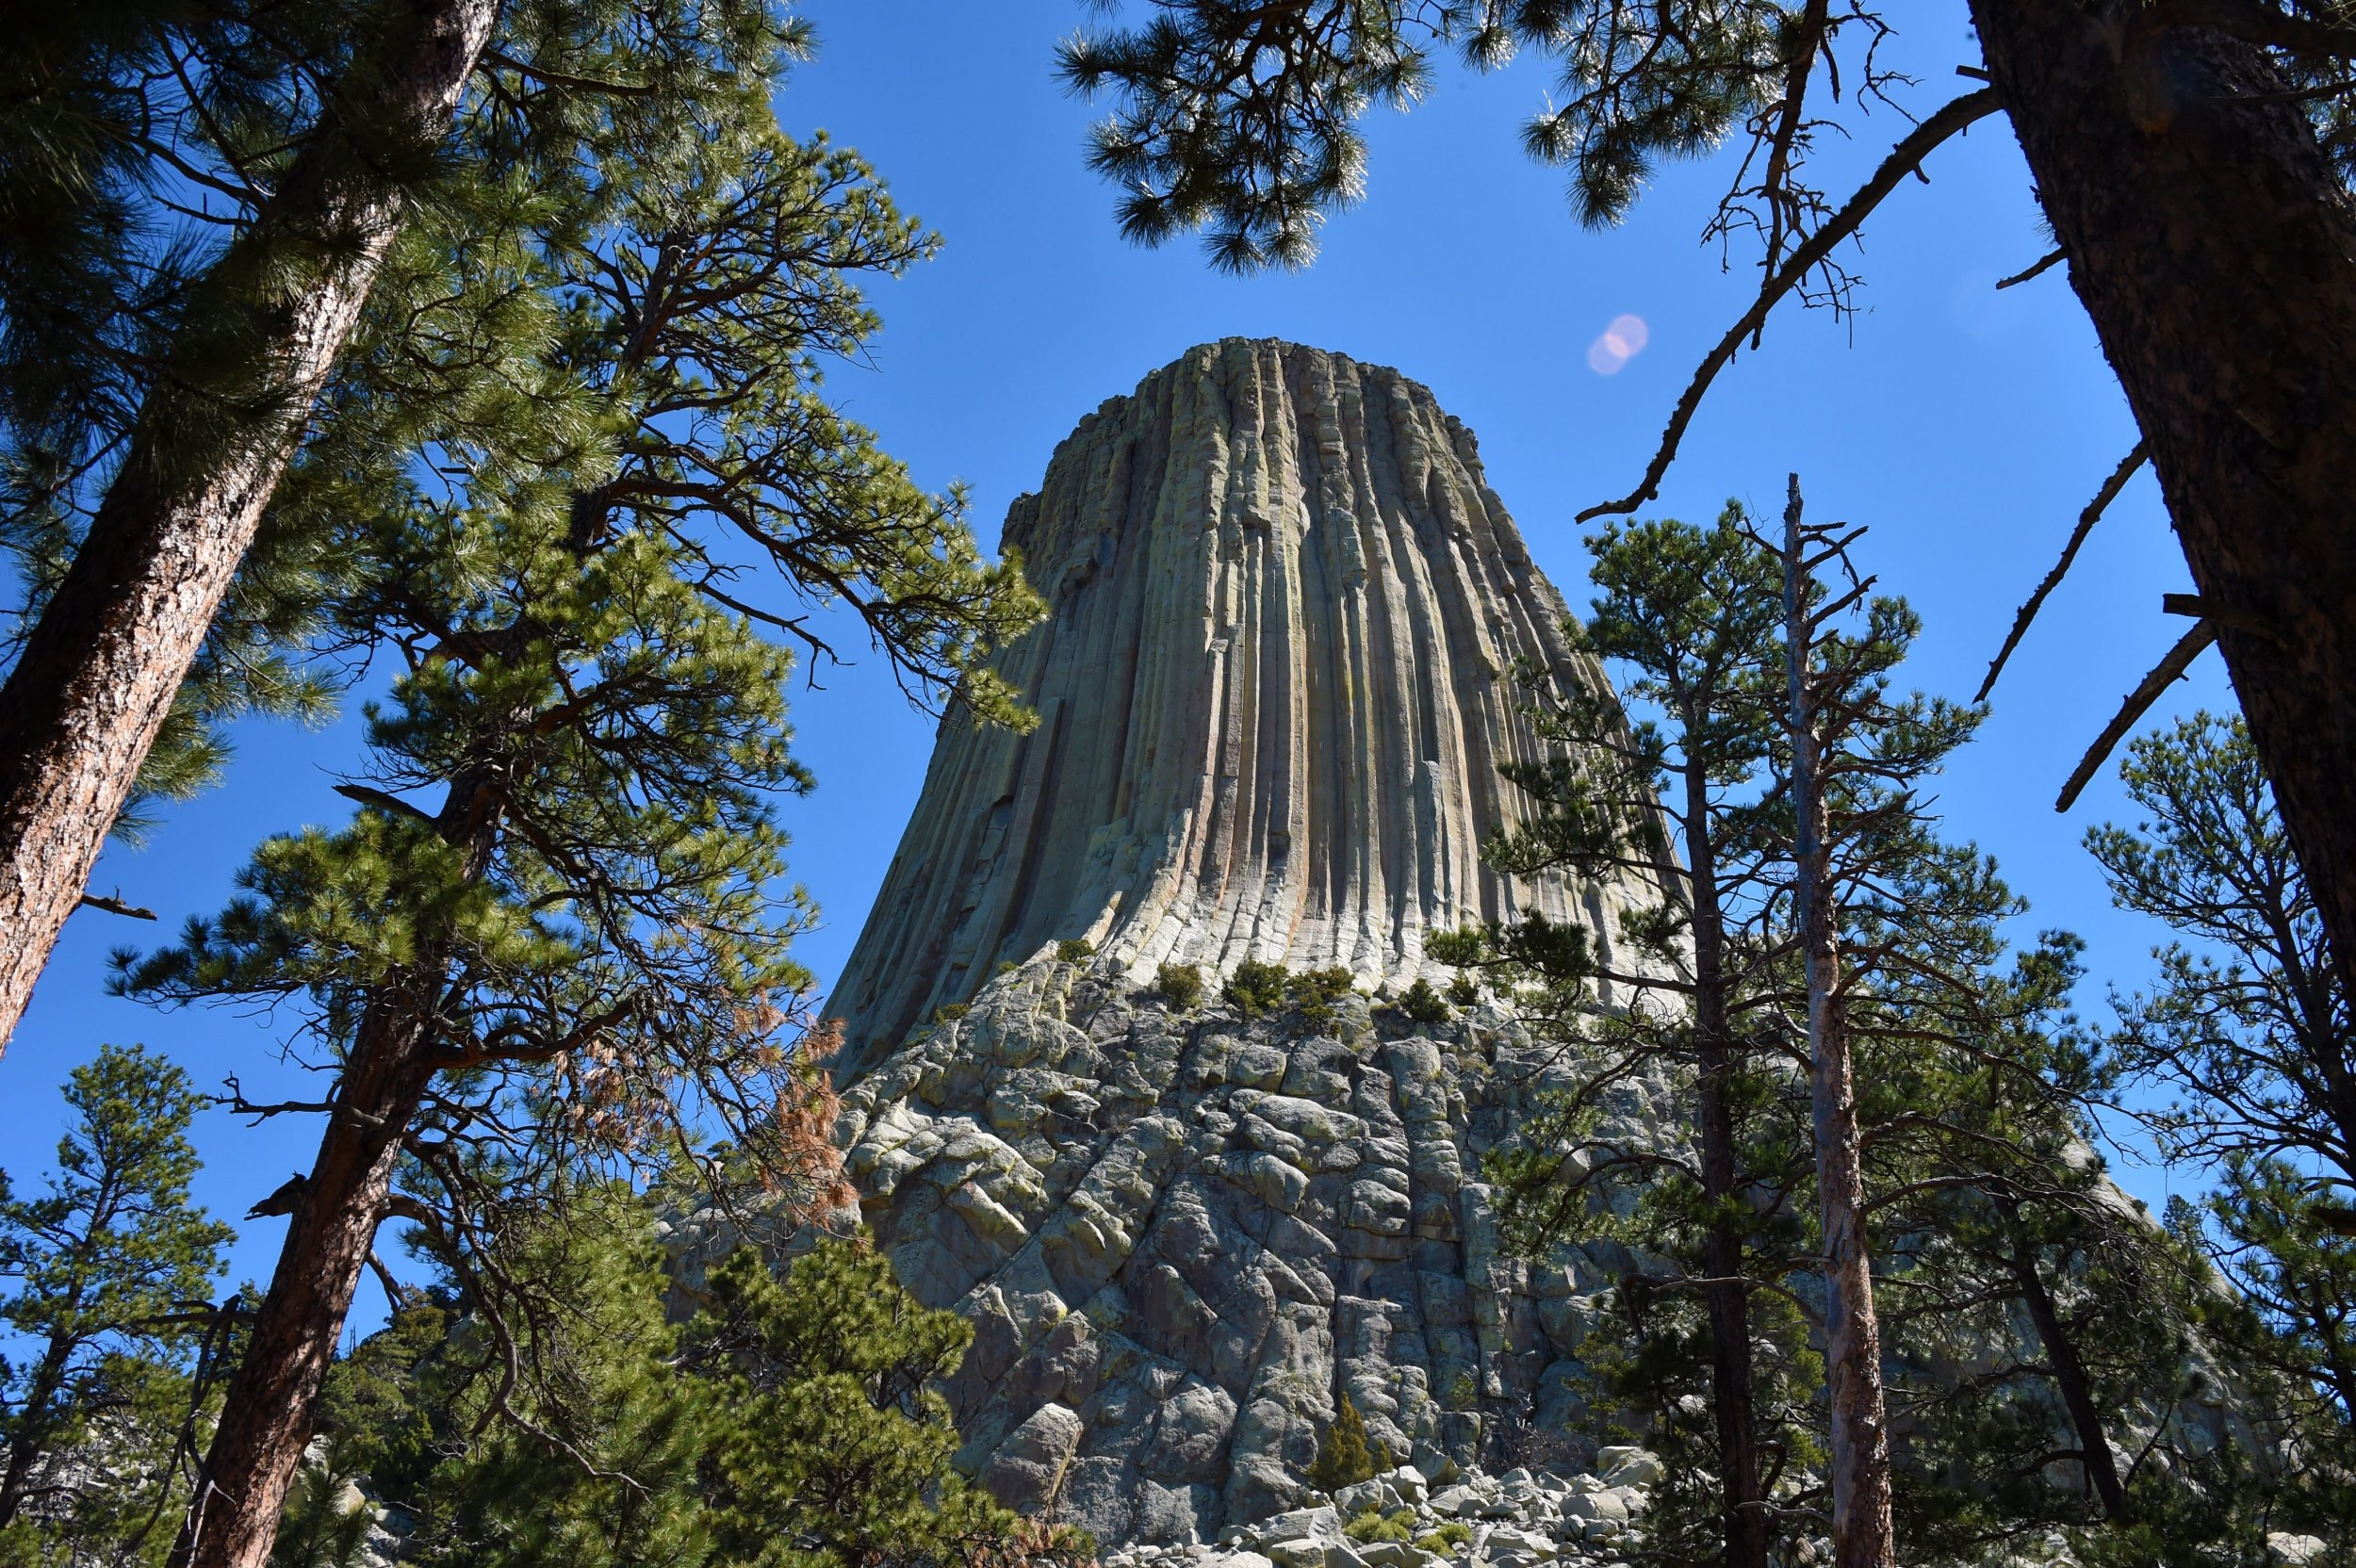 Are Aliens Real Devils Tower The Rock Formation From